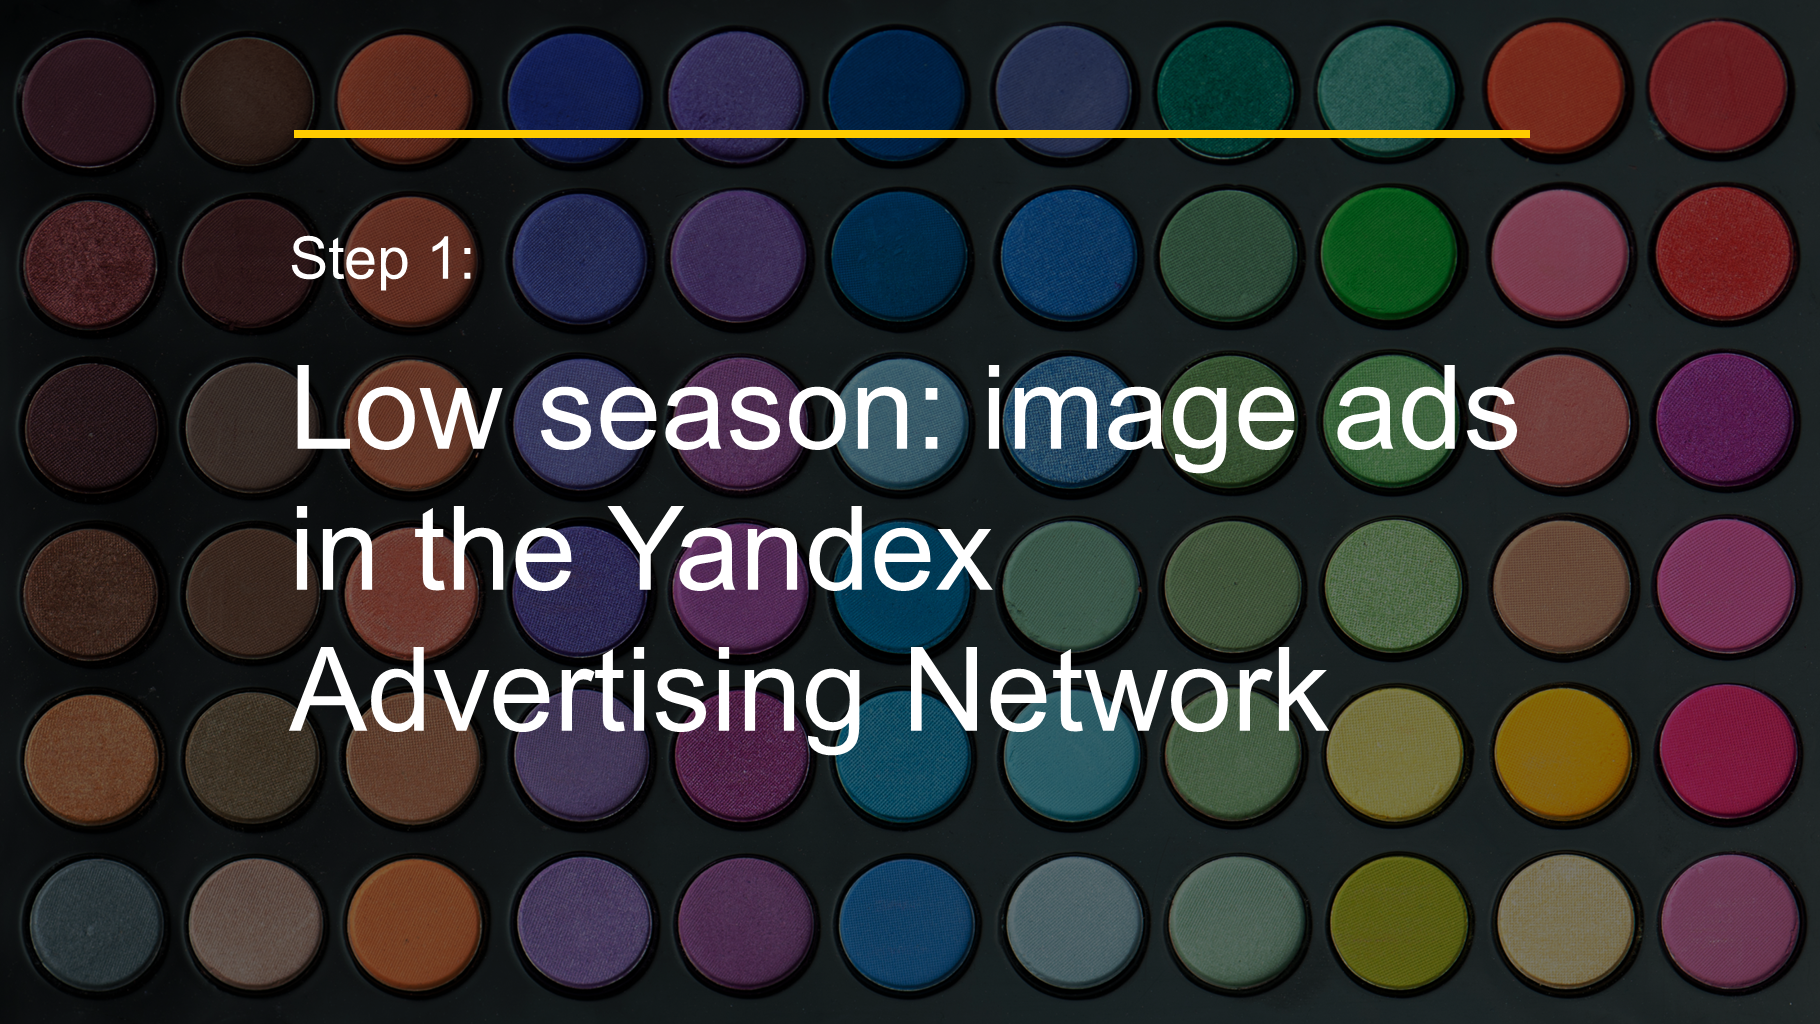 Step 1: Low season: image ads in the Yandex Advertising Network